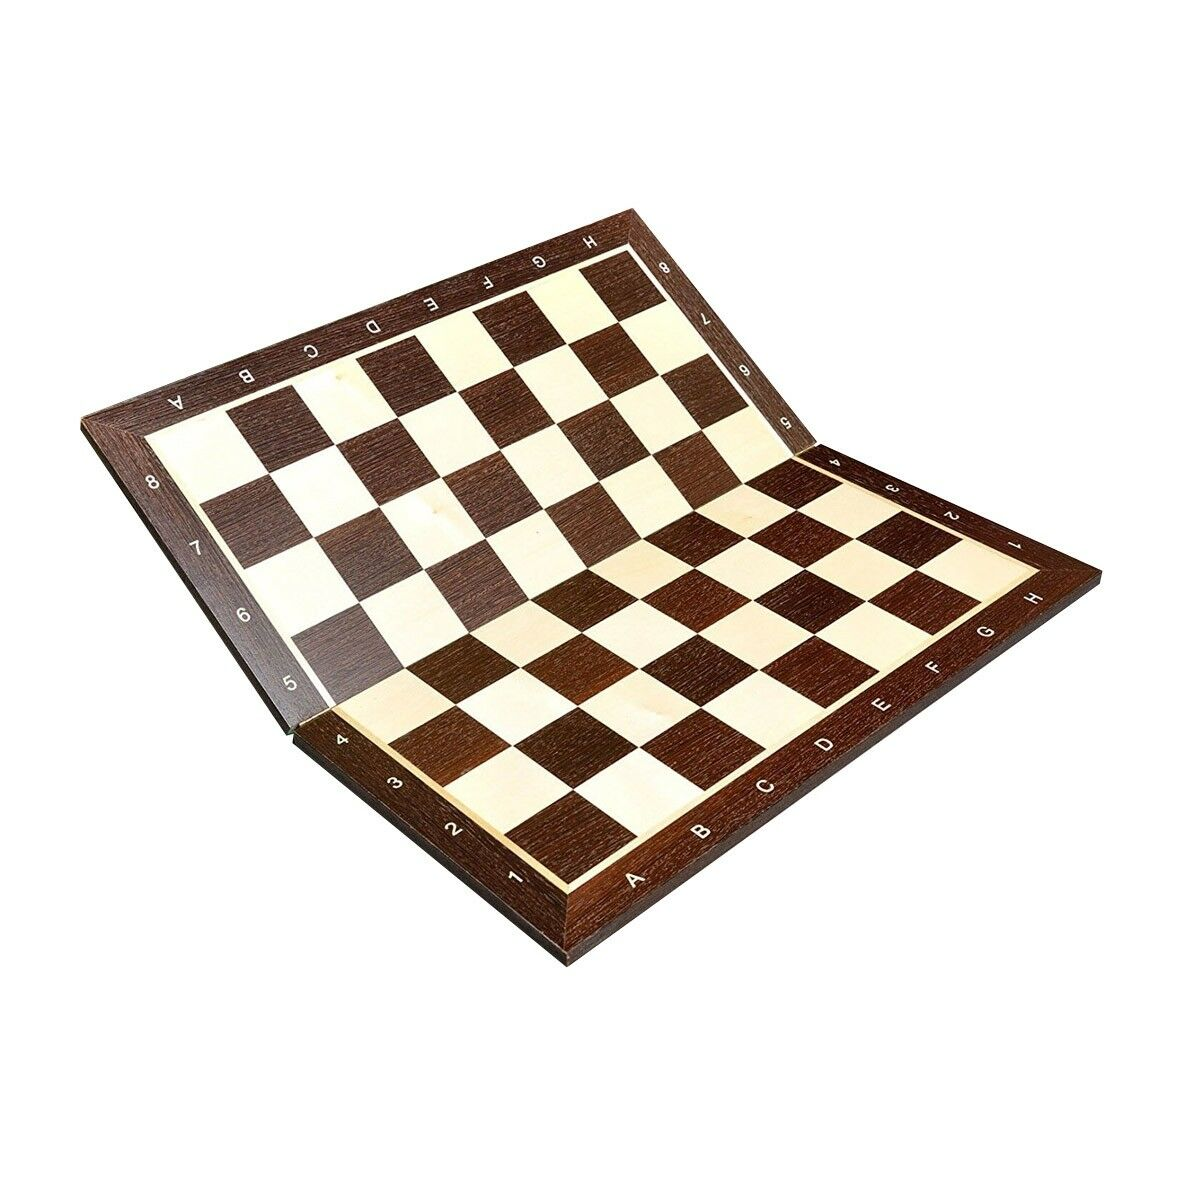 African Paliseer & Maple  Folding Wooden Chess tavola - 2.25  With Notation  marchi di stilisti economici